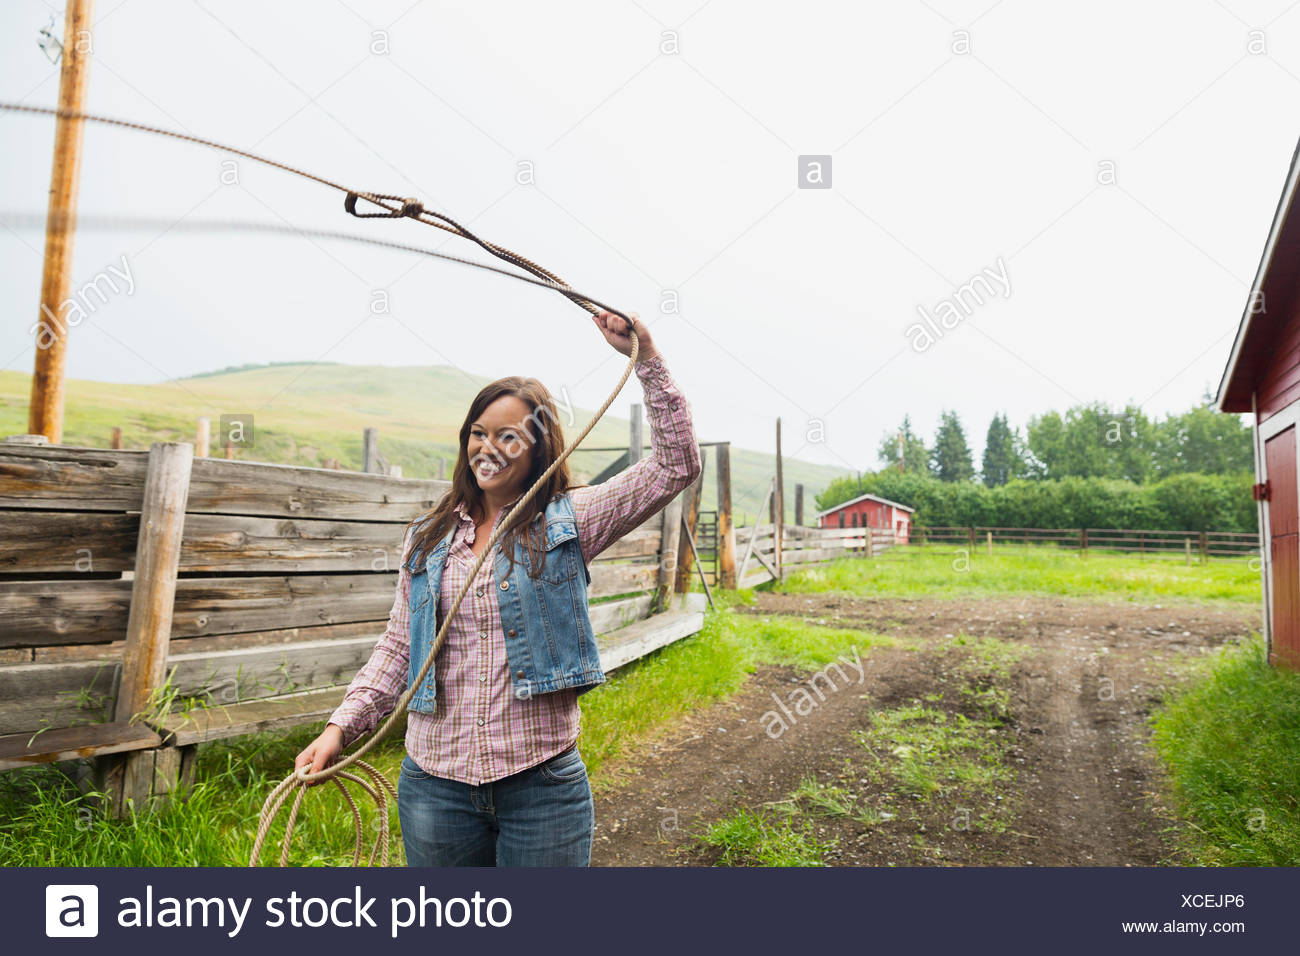 Smiling woman spinning lasso on farm - Stock Image